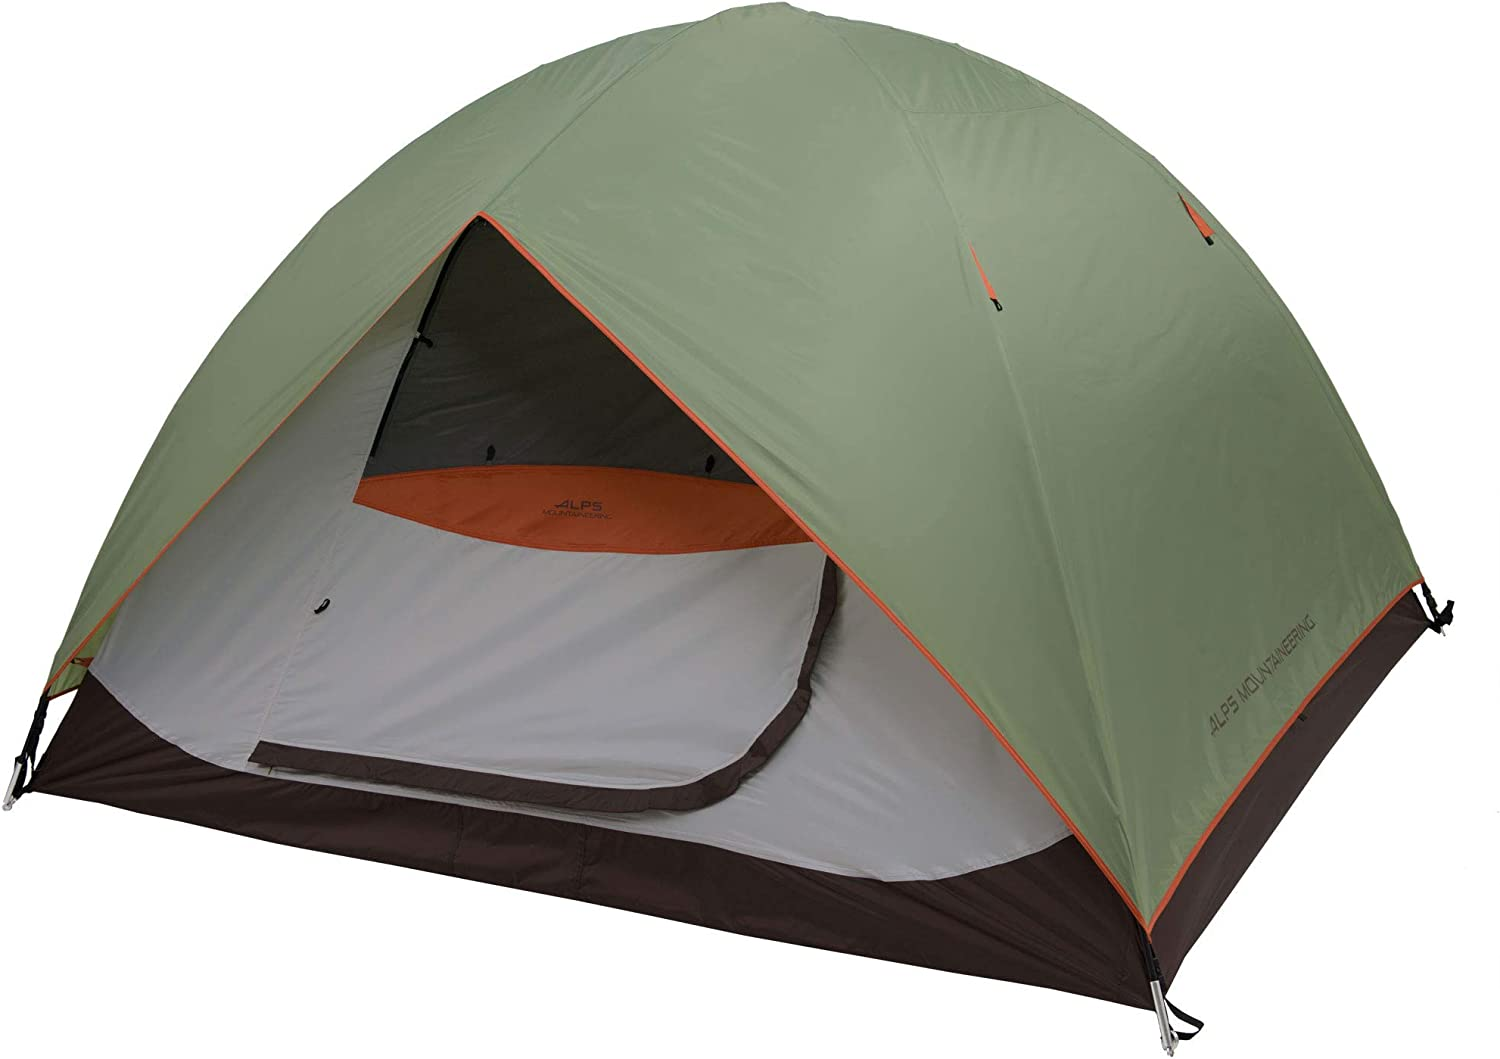 ALPS Mountaineering Meramac camping tent